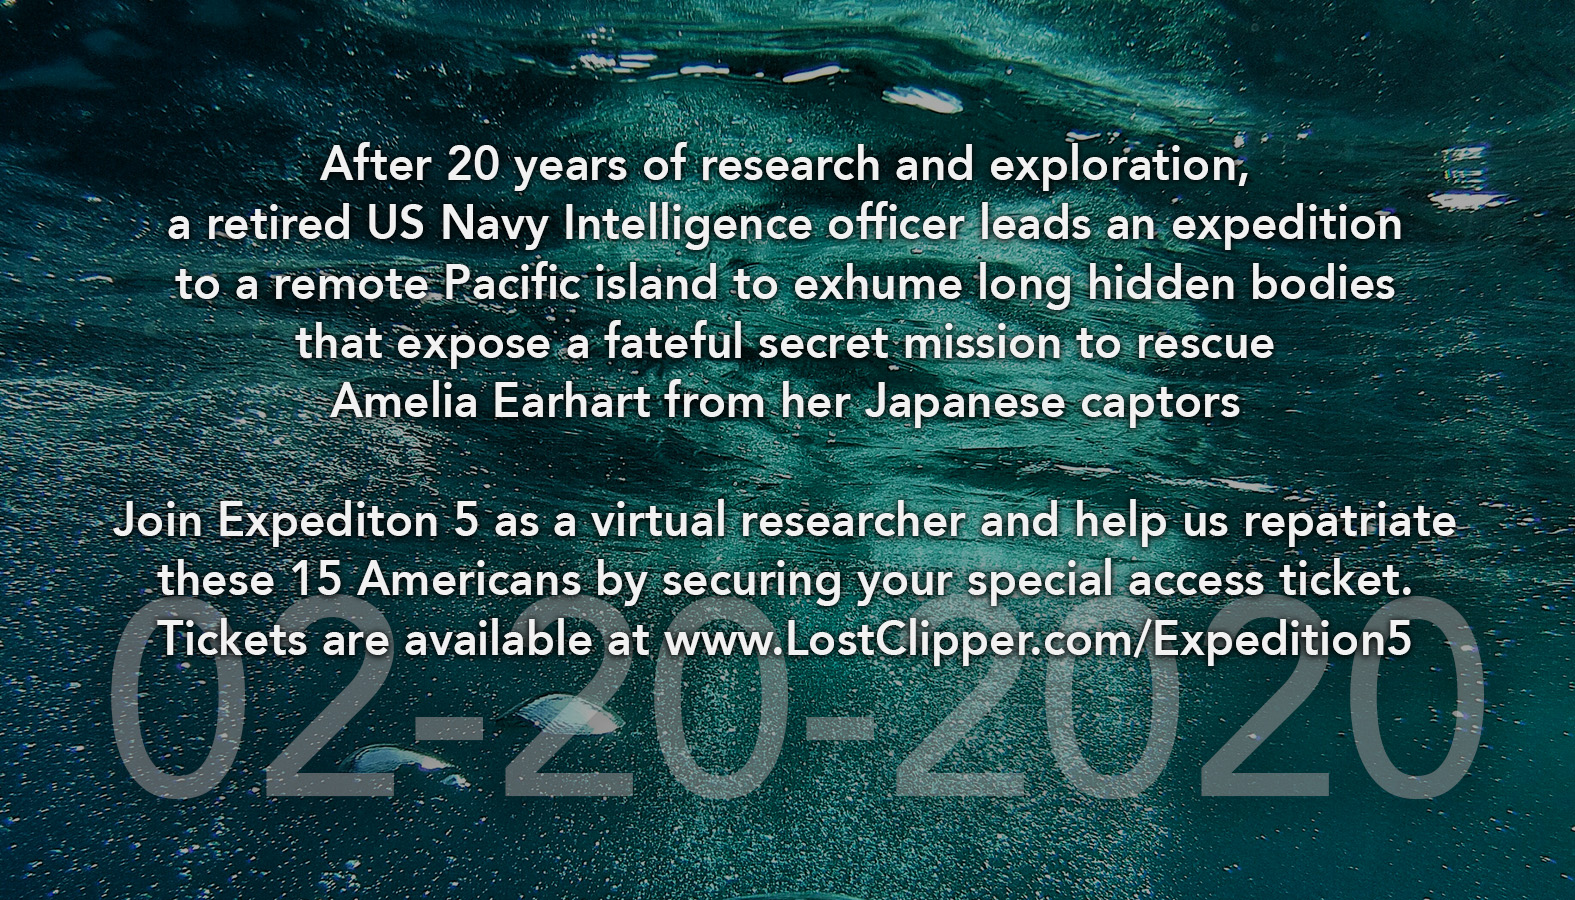 Unique online opportunity to participate in the expedition to uncover the truth.